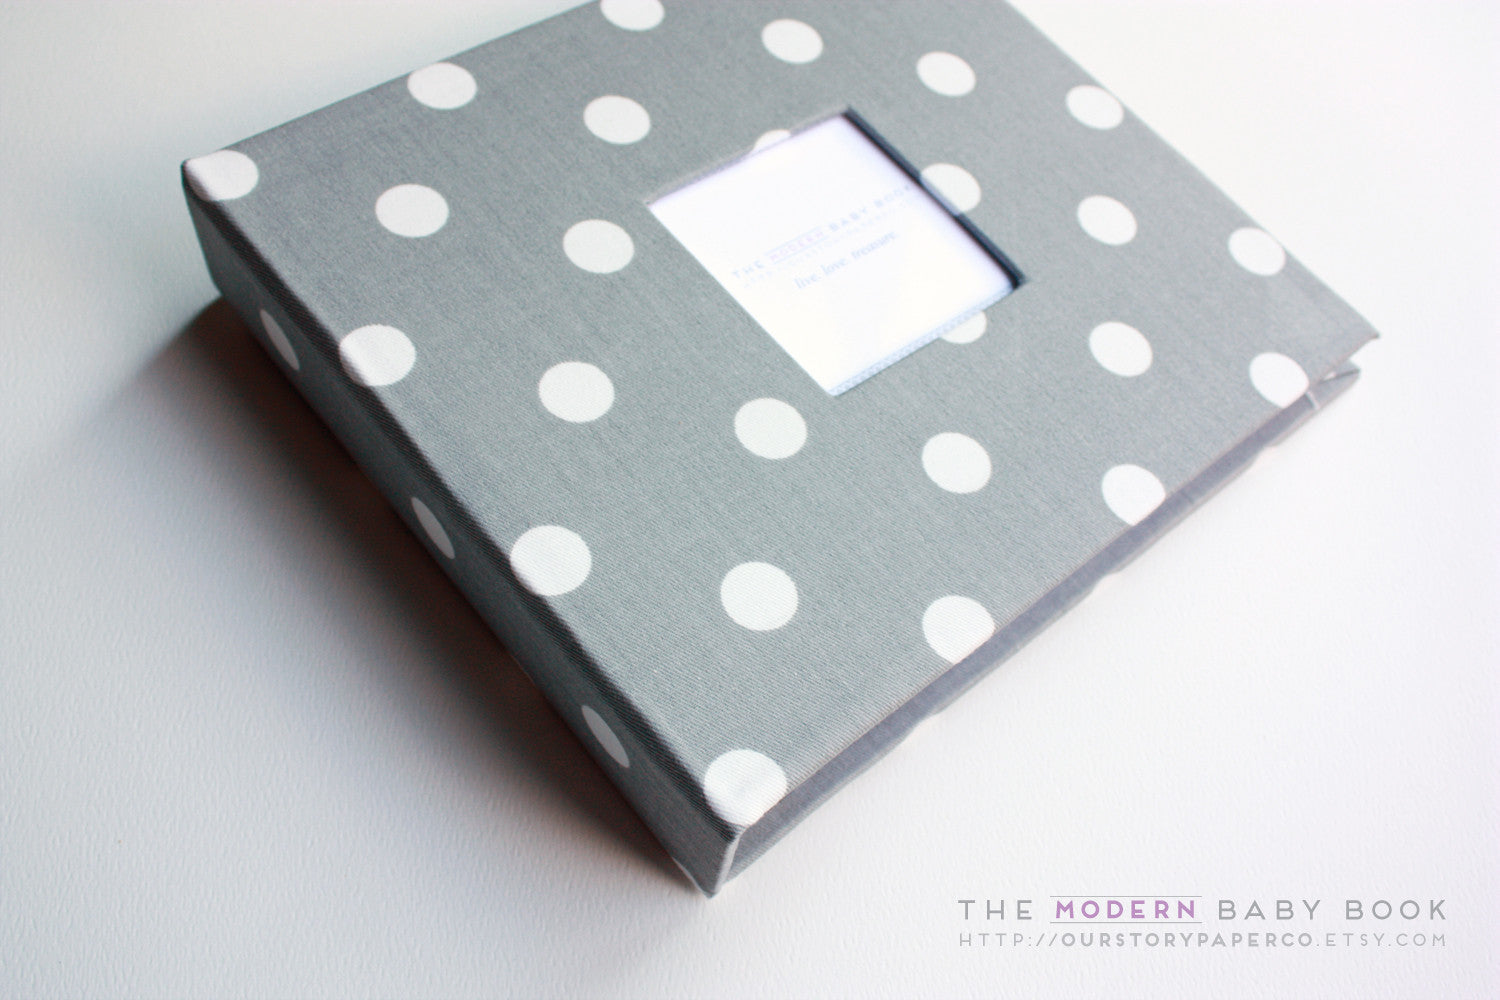 Gray Polka Dot Modern Baby Book - Our Story Paper Co.